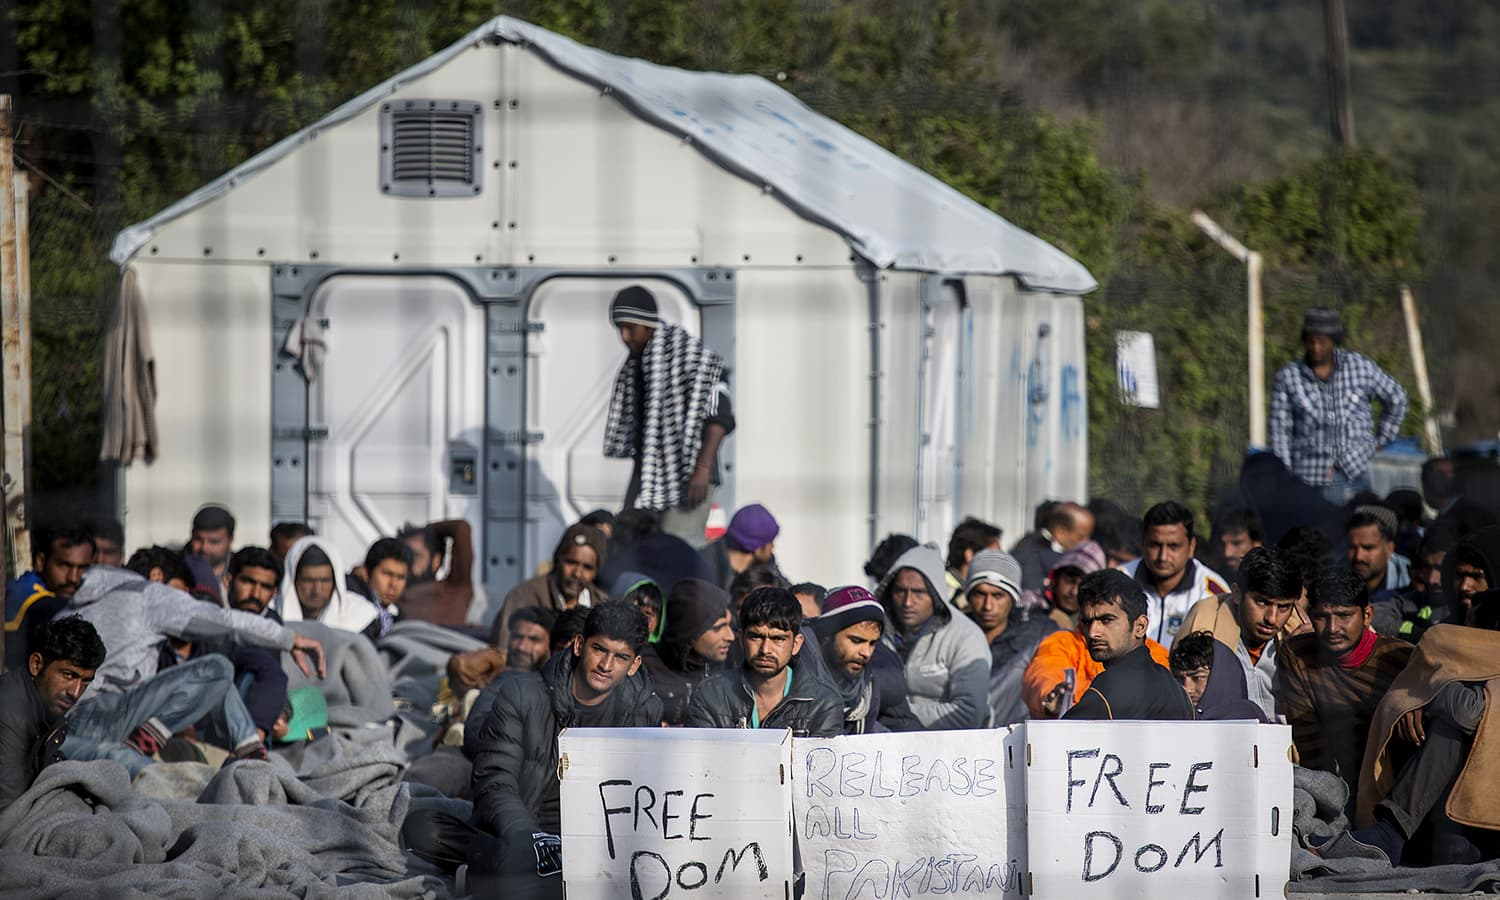 Pakistan migrants hold a hunger strike sit in protest at Moria Camp, a detention center on the Greek island of Lesbos on April 7, 2016. Hundreds of Pakistanis are trapped on the Greek island of Lesbos. Greece began deported immigrants to Turkey last week, among them more than 200 Pakistanis, vastly more than any other group.